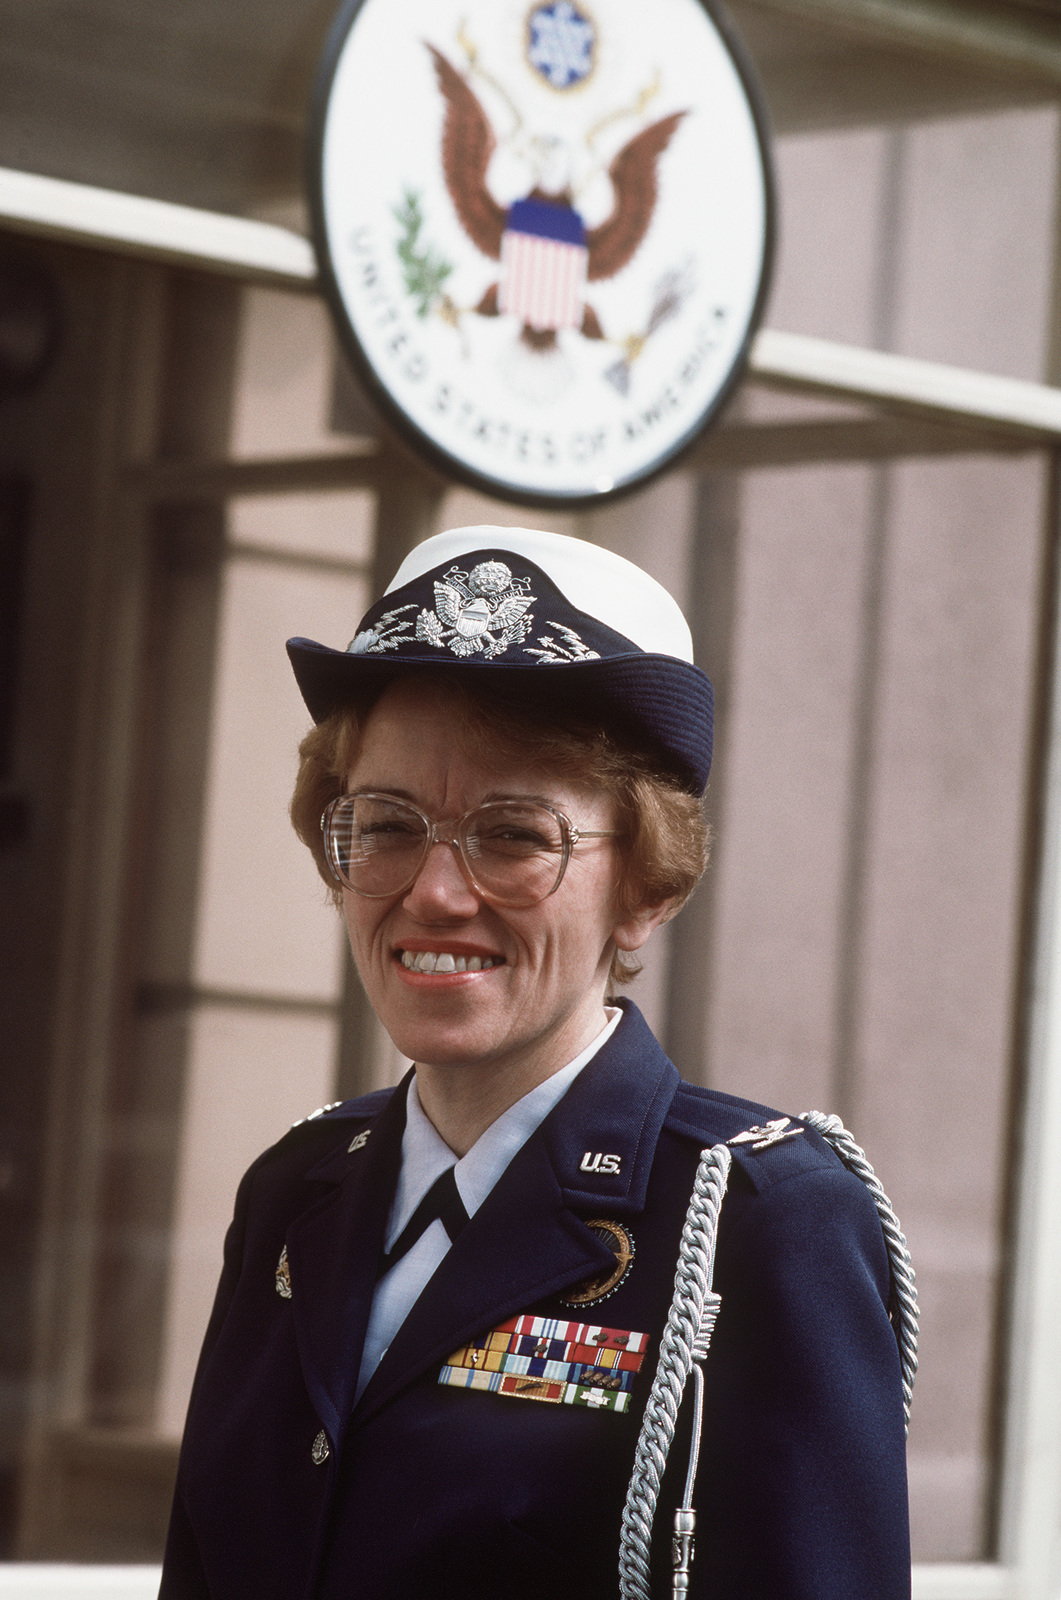 COL Ruth Anderson, the U.S. defense and air attache to Hungary, poses for a photograph outside the American Embassy